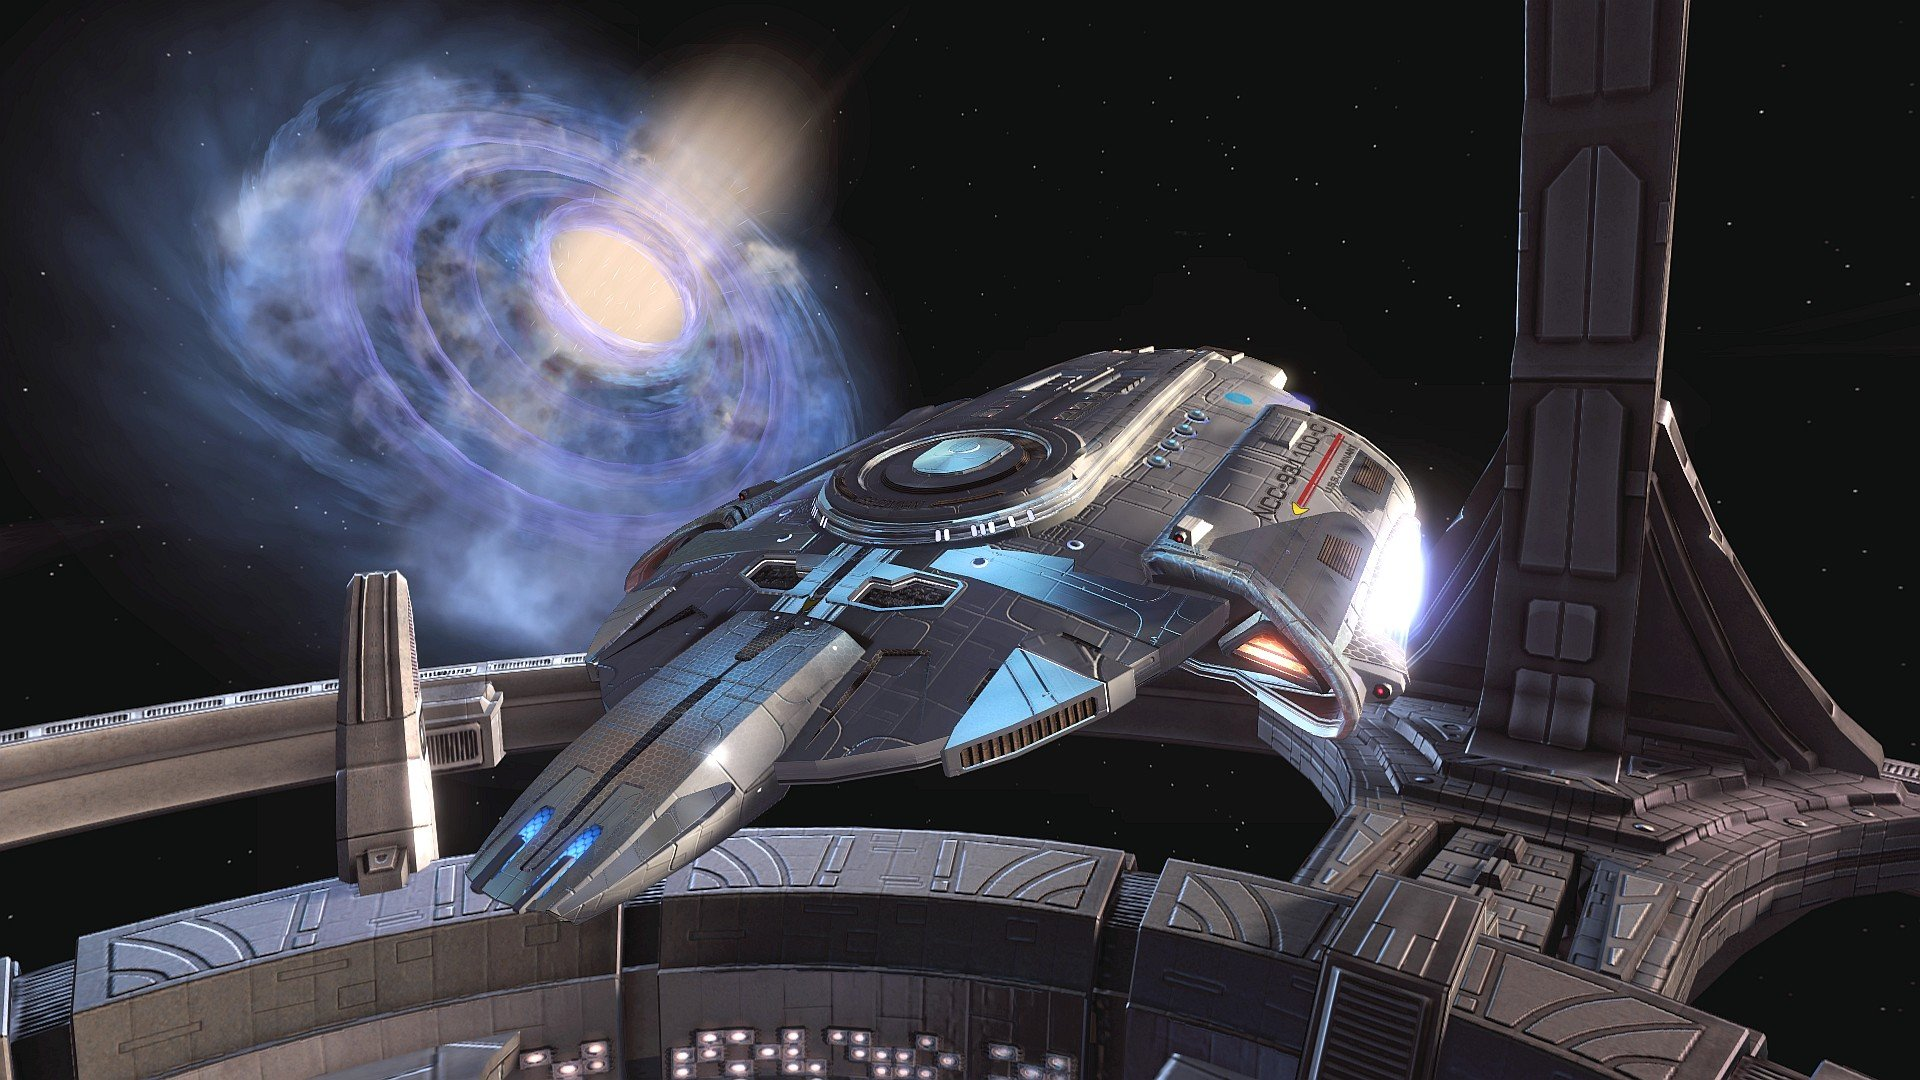 DEEP SPACE NINE Star Trek futuristic television sci fi spaceship 11 1920x1080